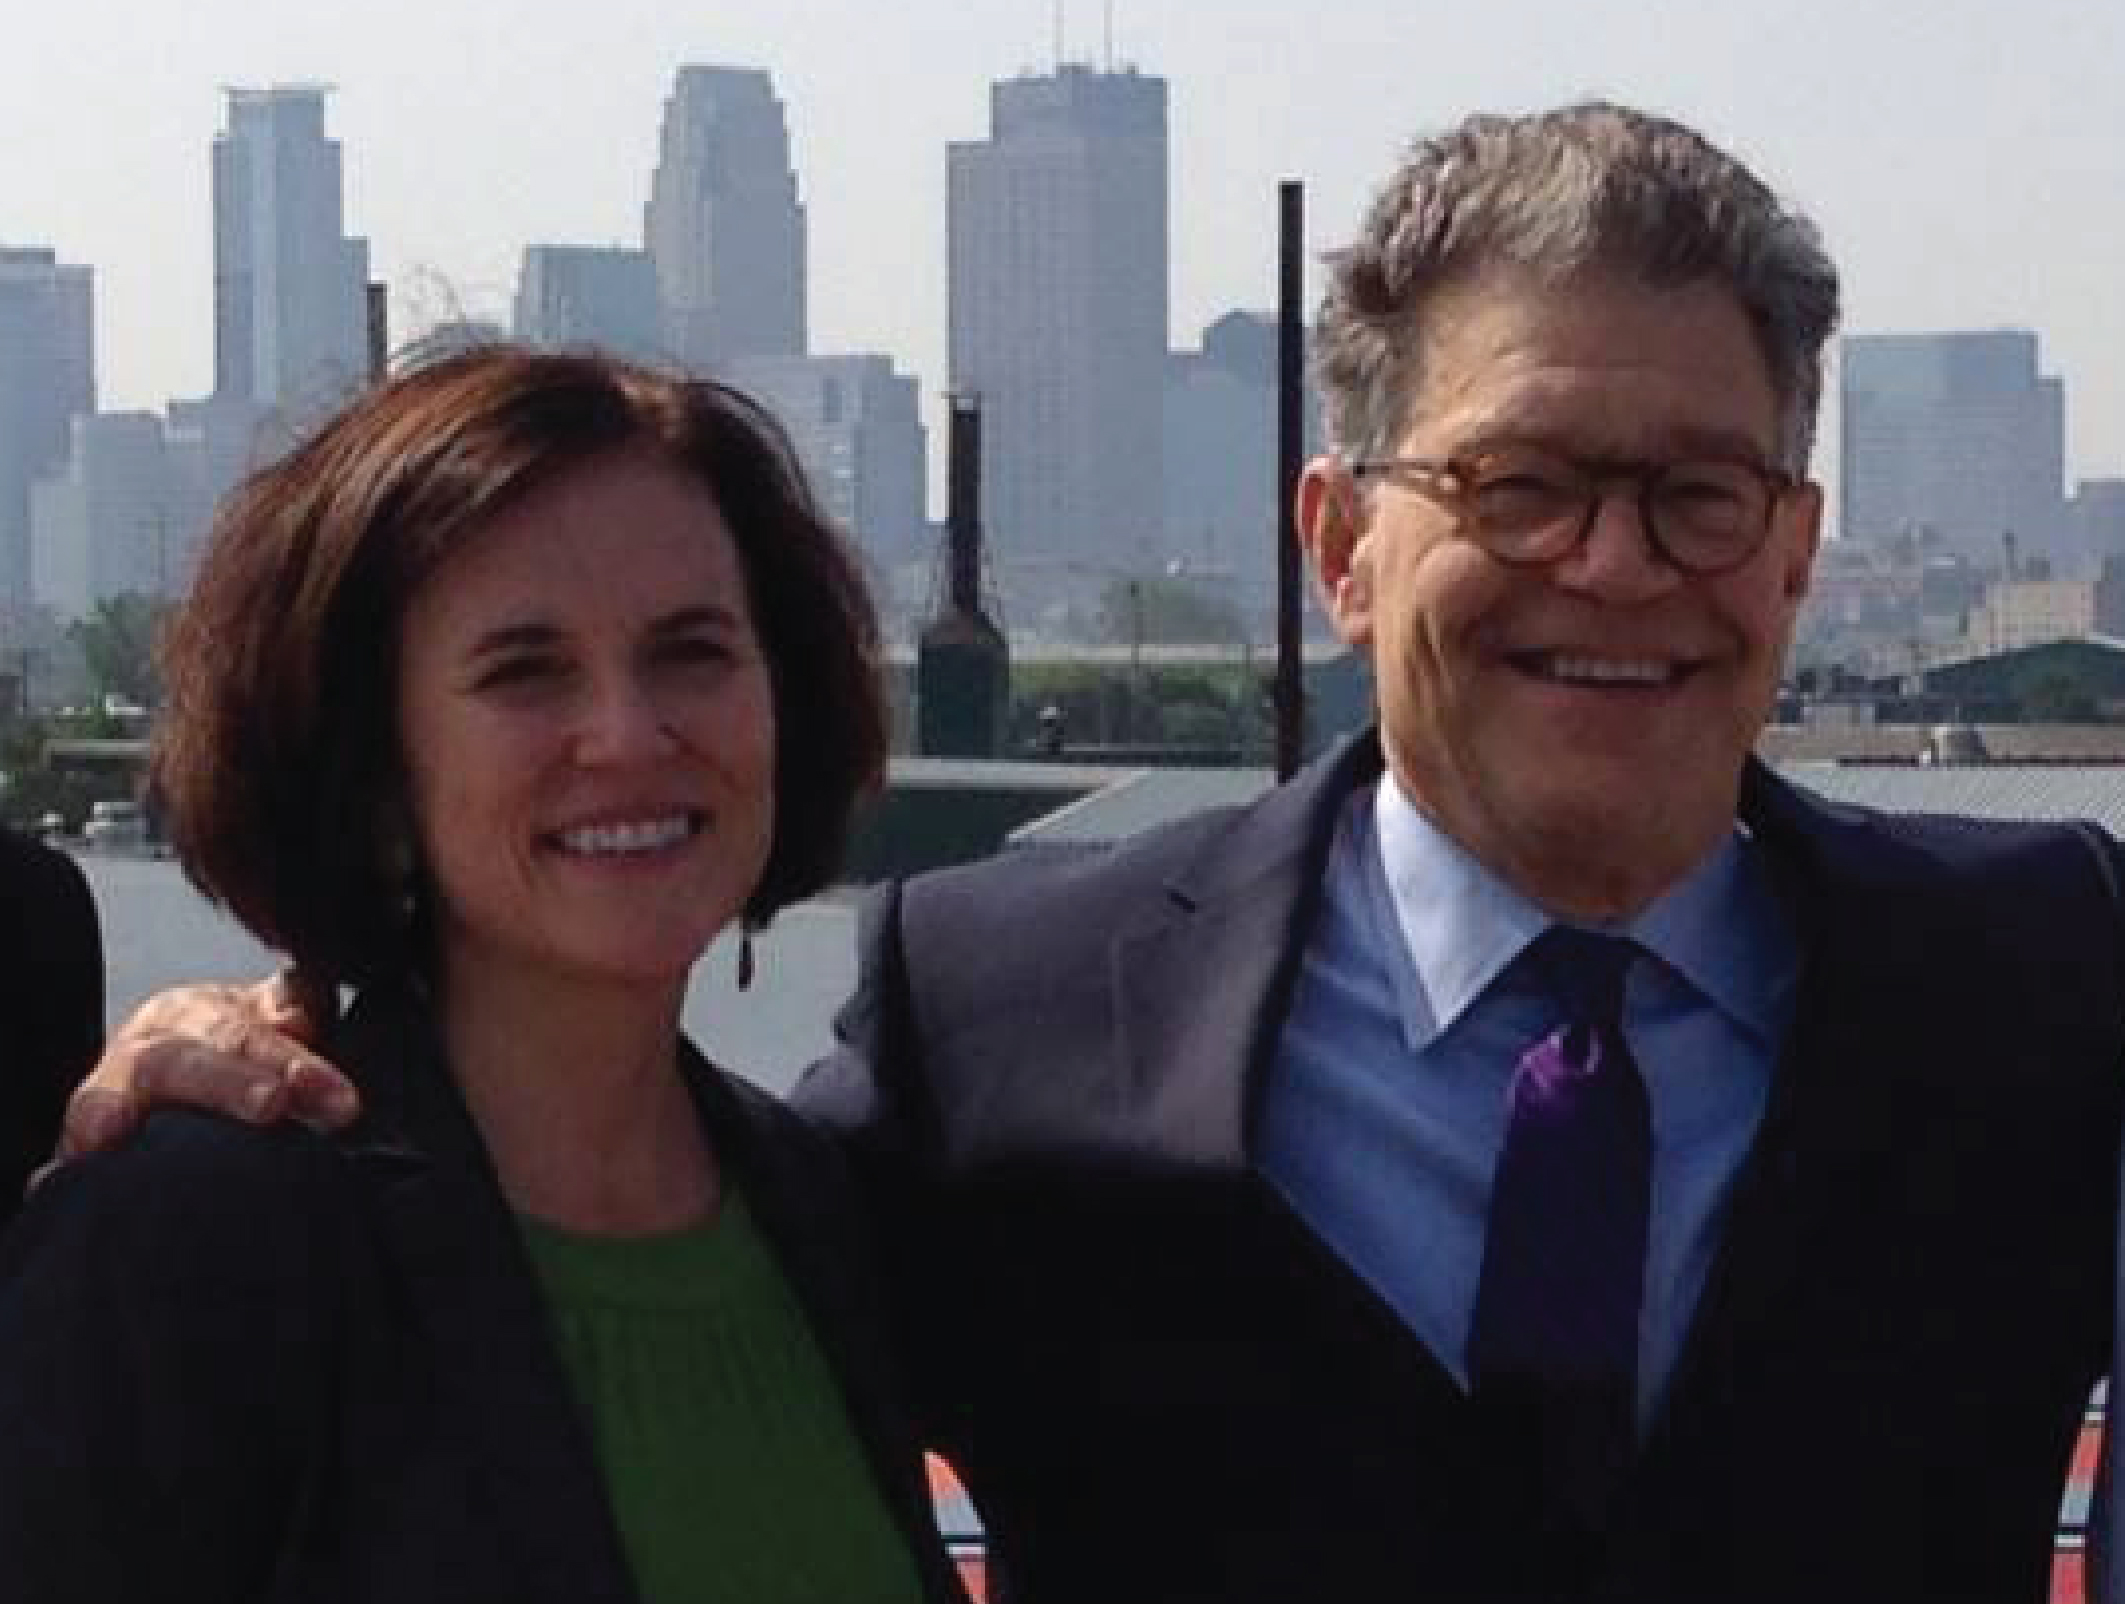 Press Release: Mayor Hodges Announces Senator Al Franken's Endorsement